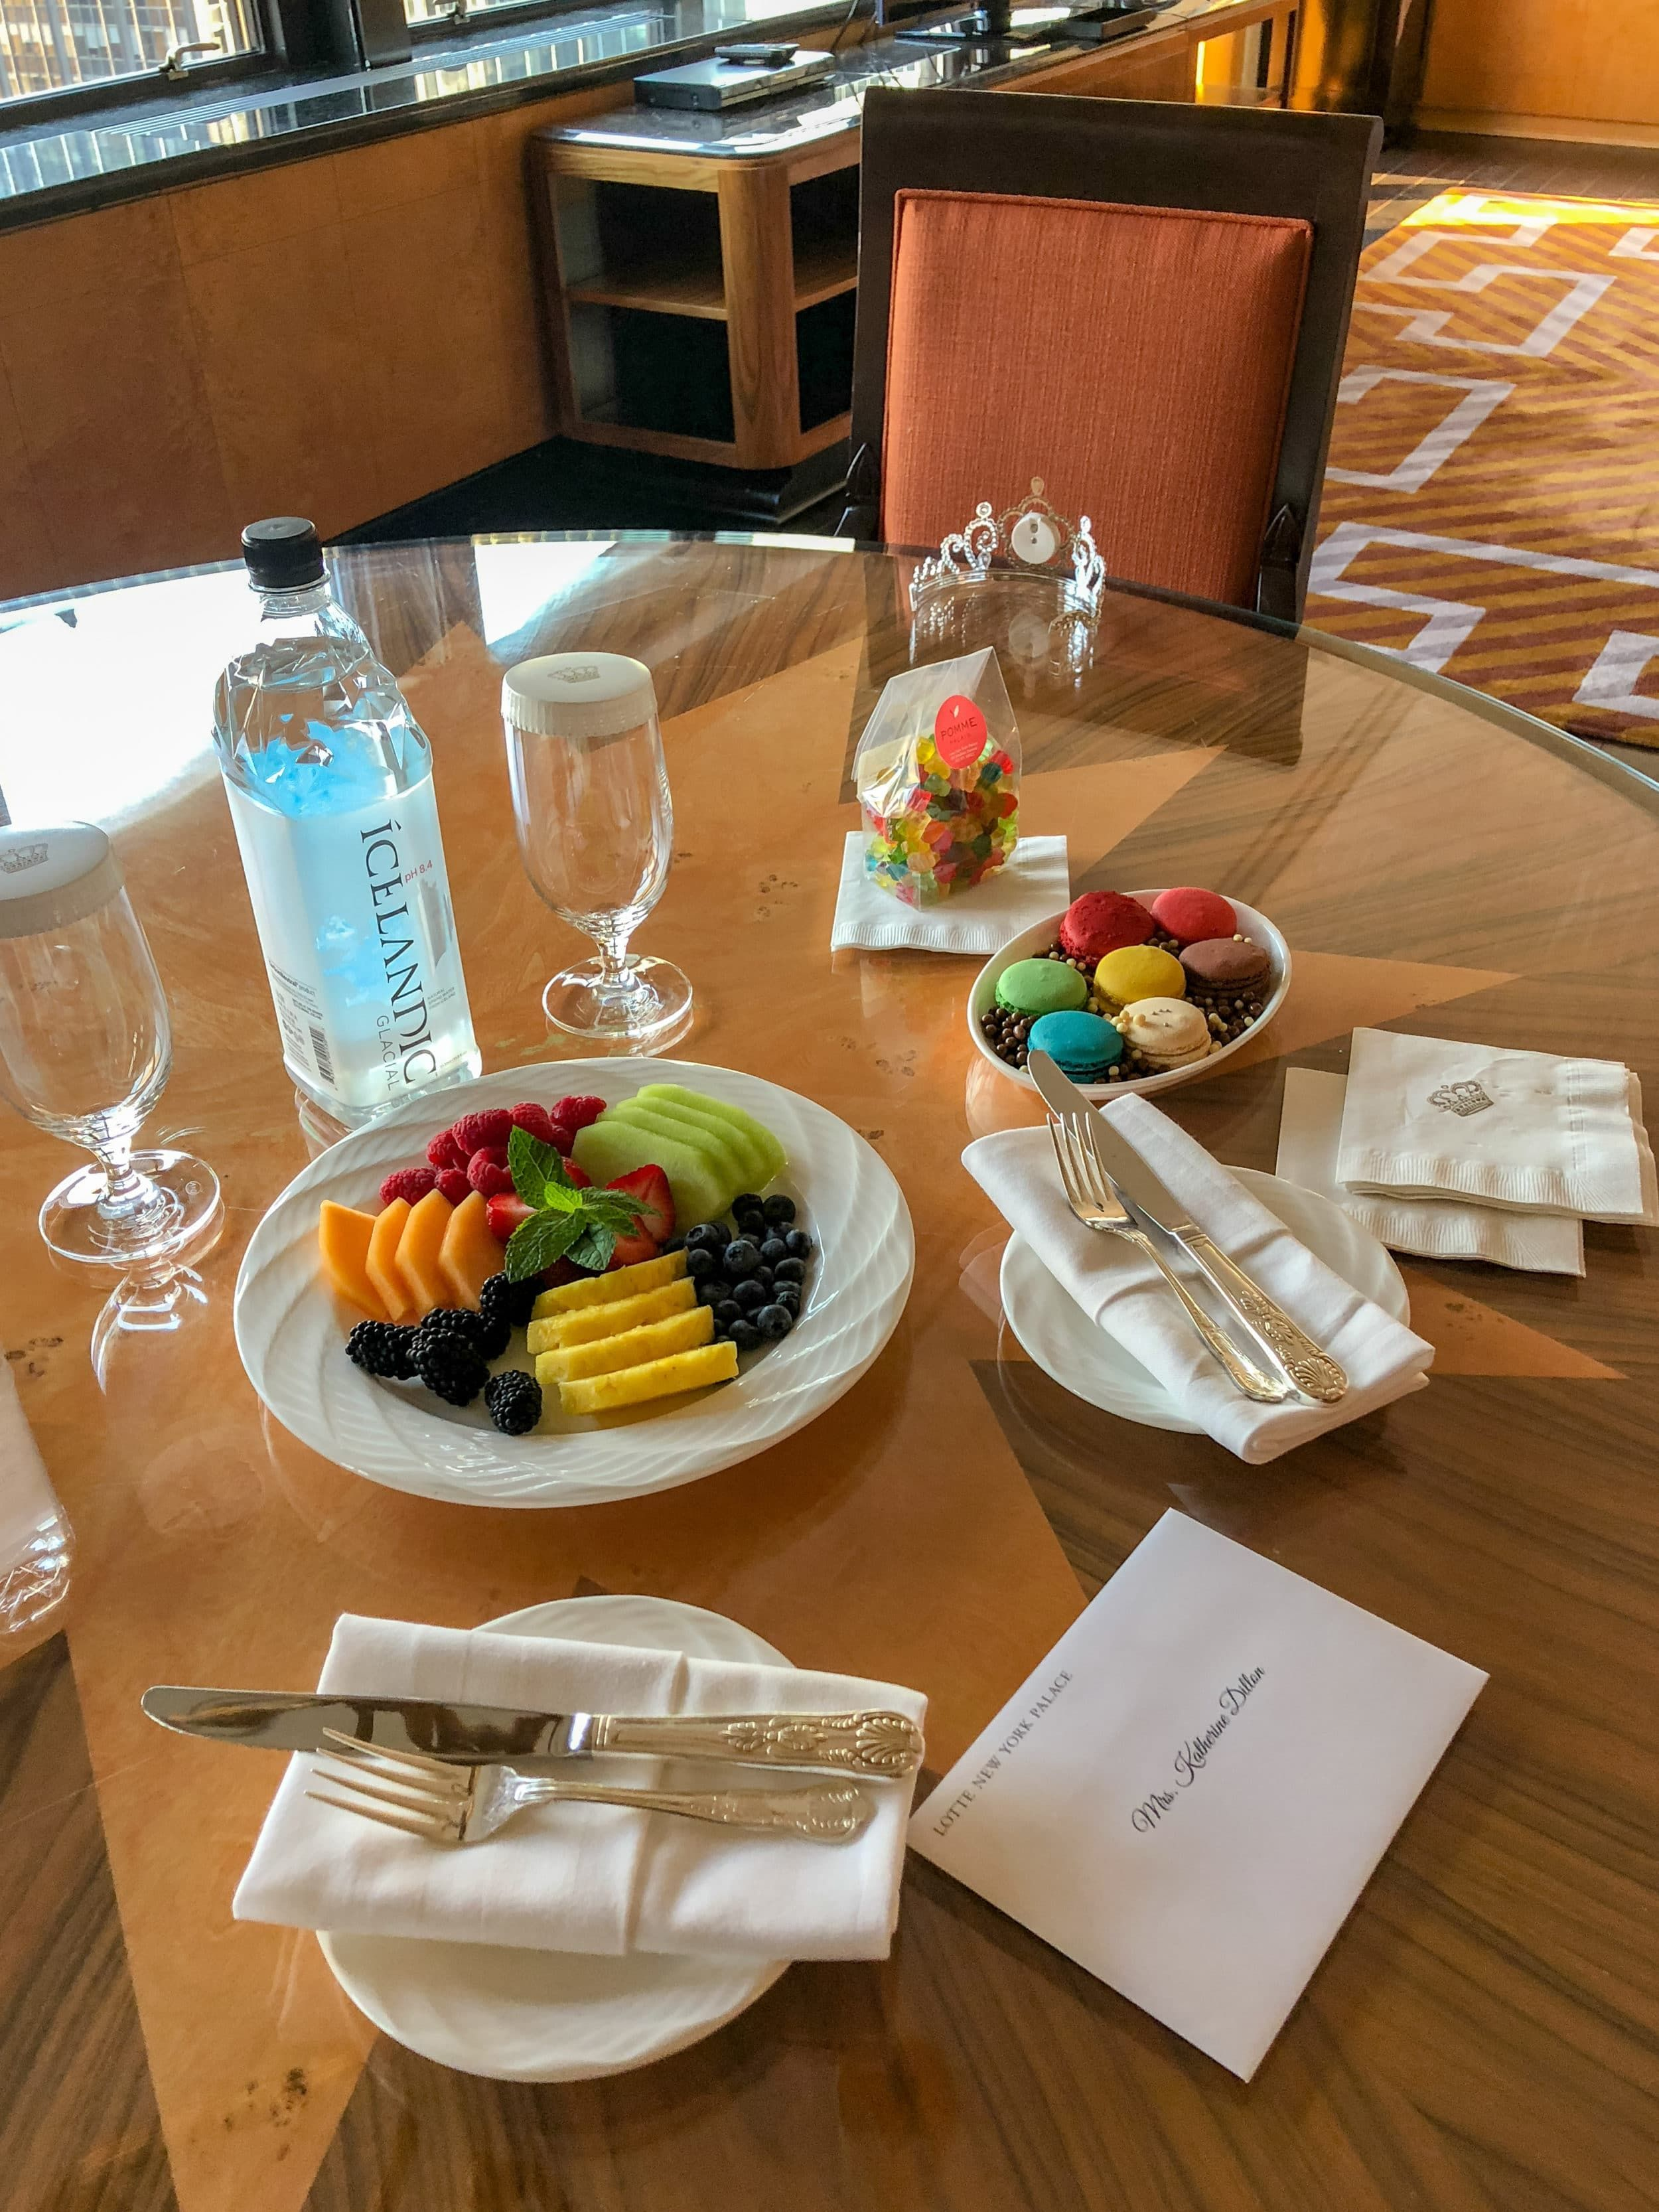 Lotte New York Palace (Our Stay in The Towers)   Dinner recipes for kids, Nyc with kids, Palace nyc